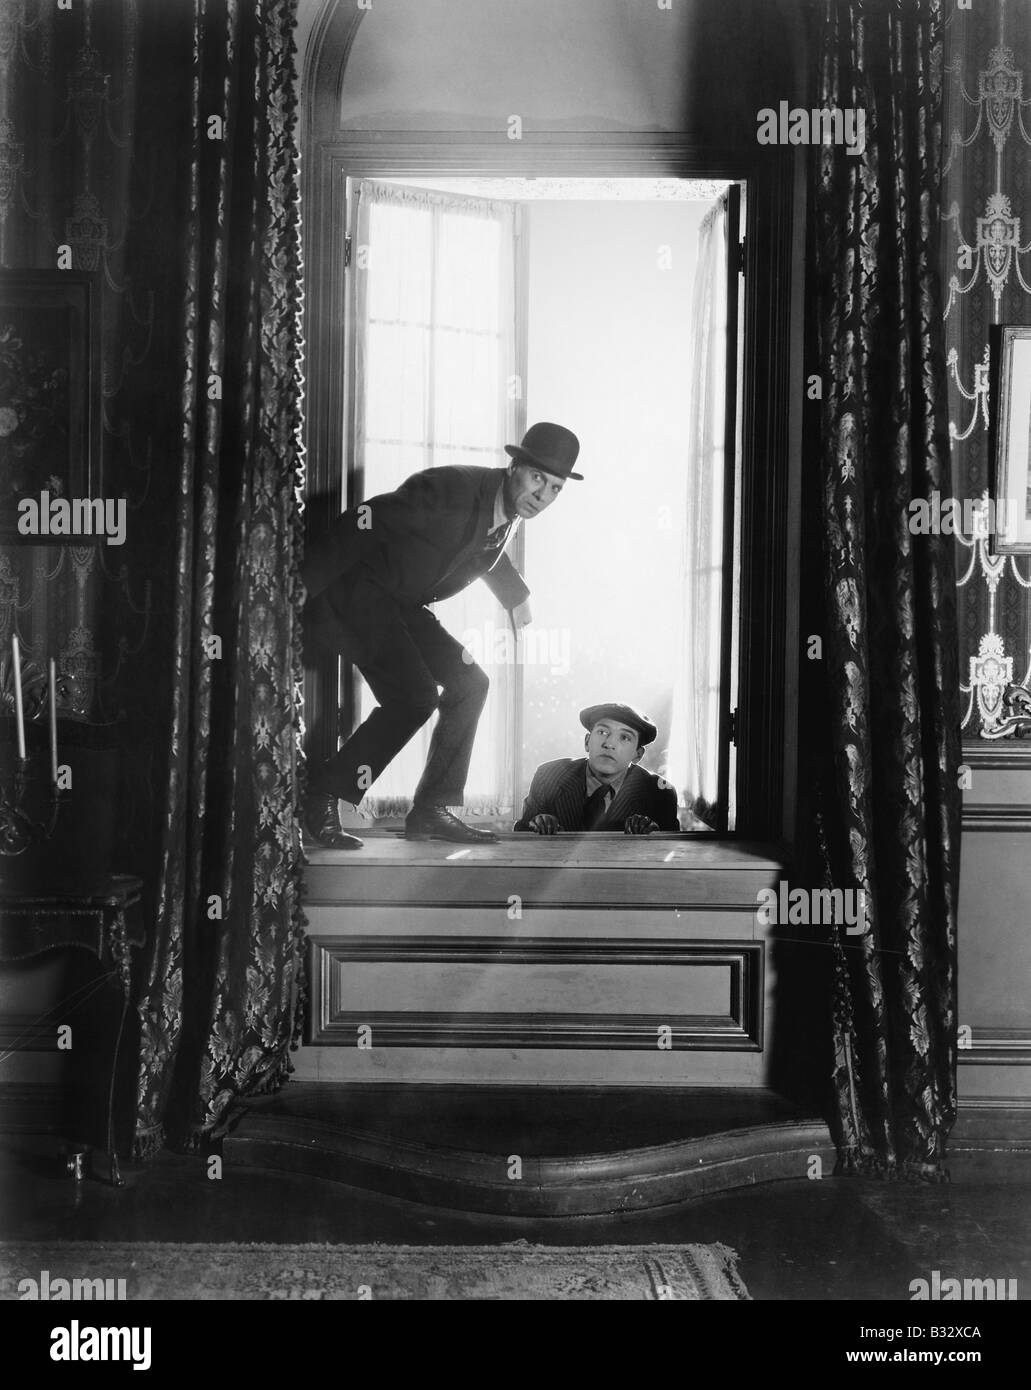 Two men breaking into an apartment - Stock Image